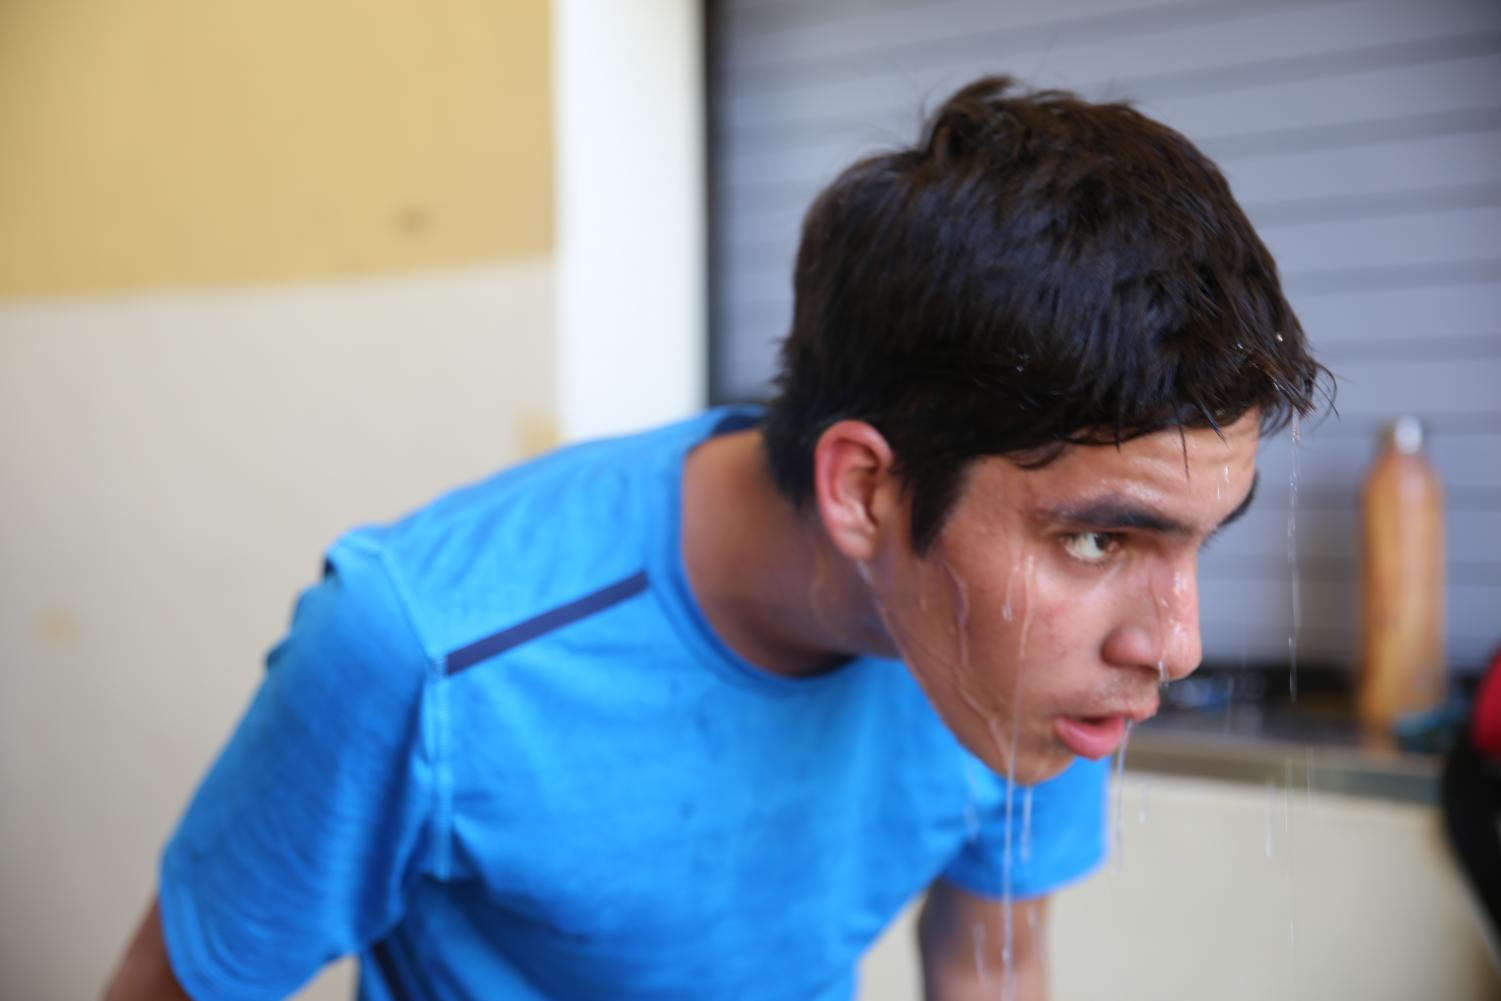 Junior Braulio Gonzales captured as he poured water on his head after cross country practice at the front of the new building.